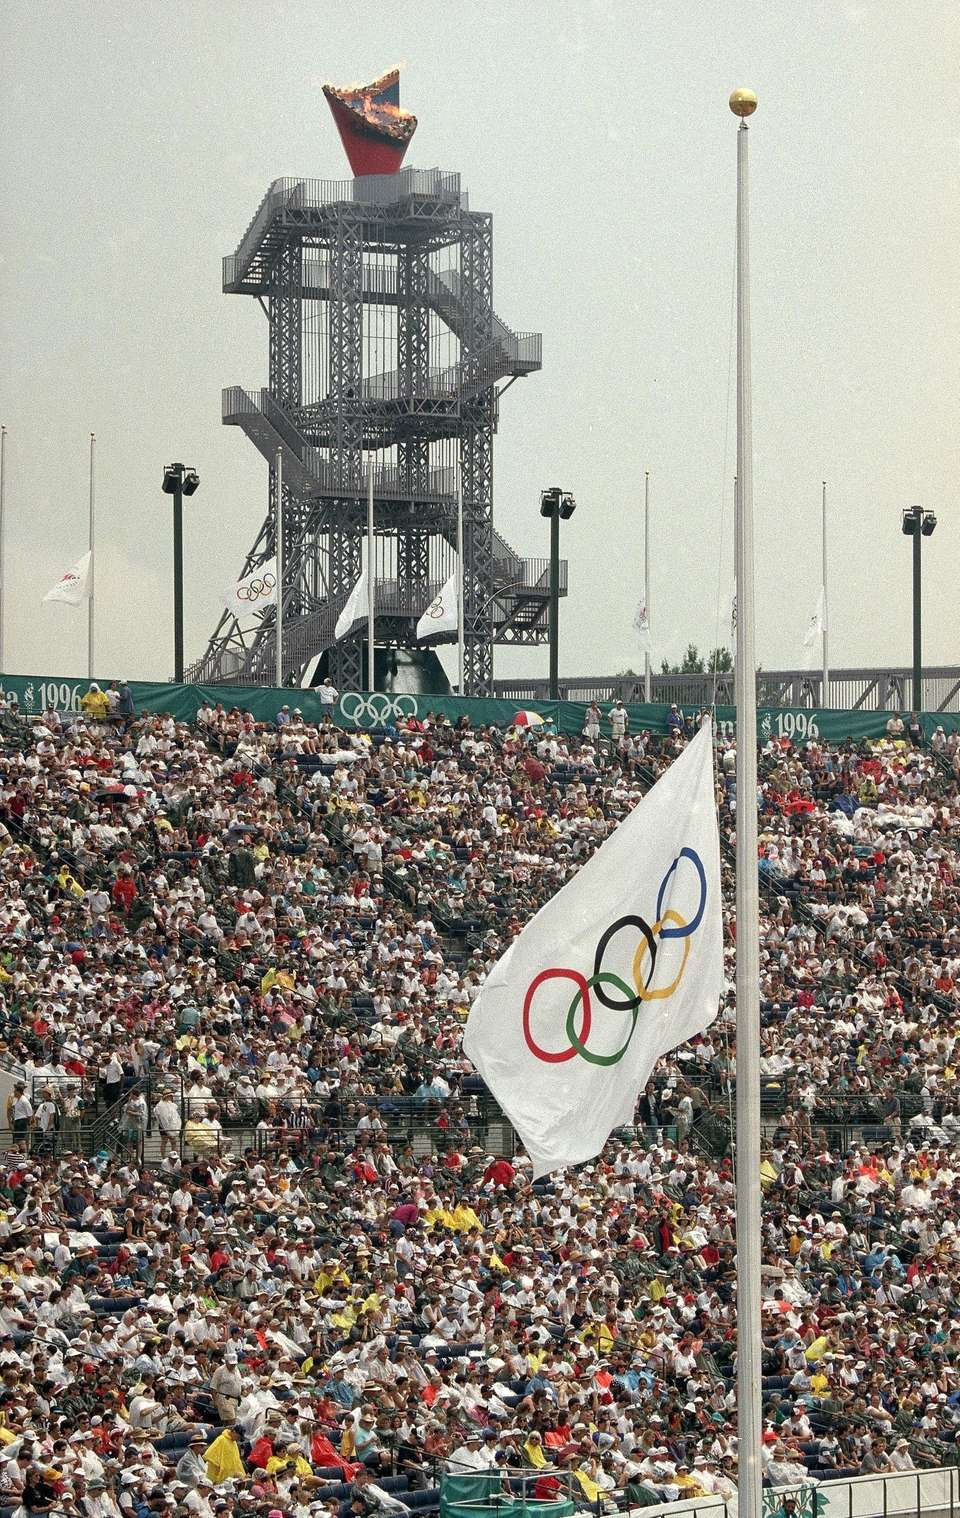 The Olympic flag flies at half staff during